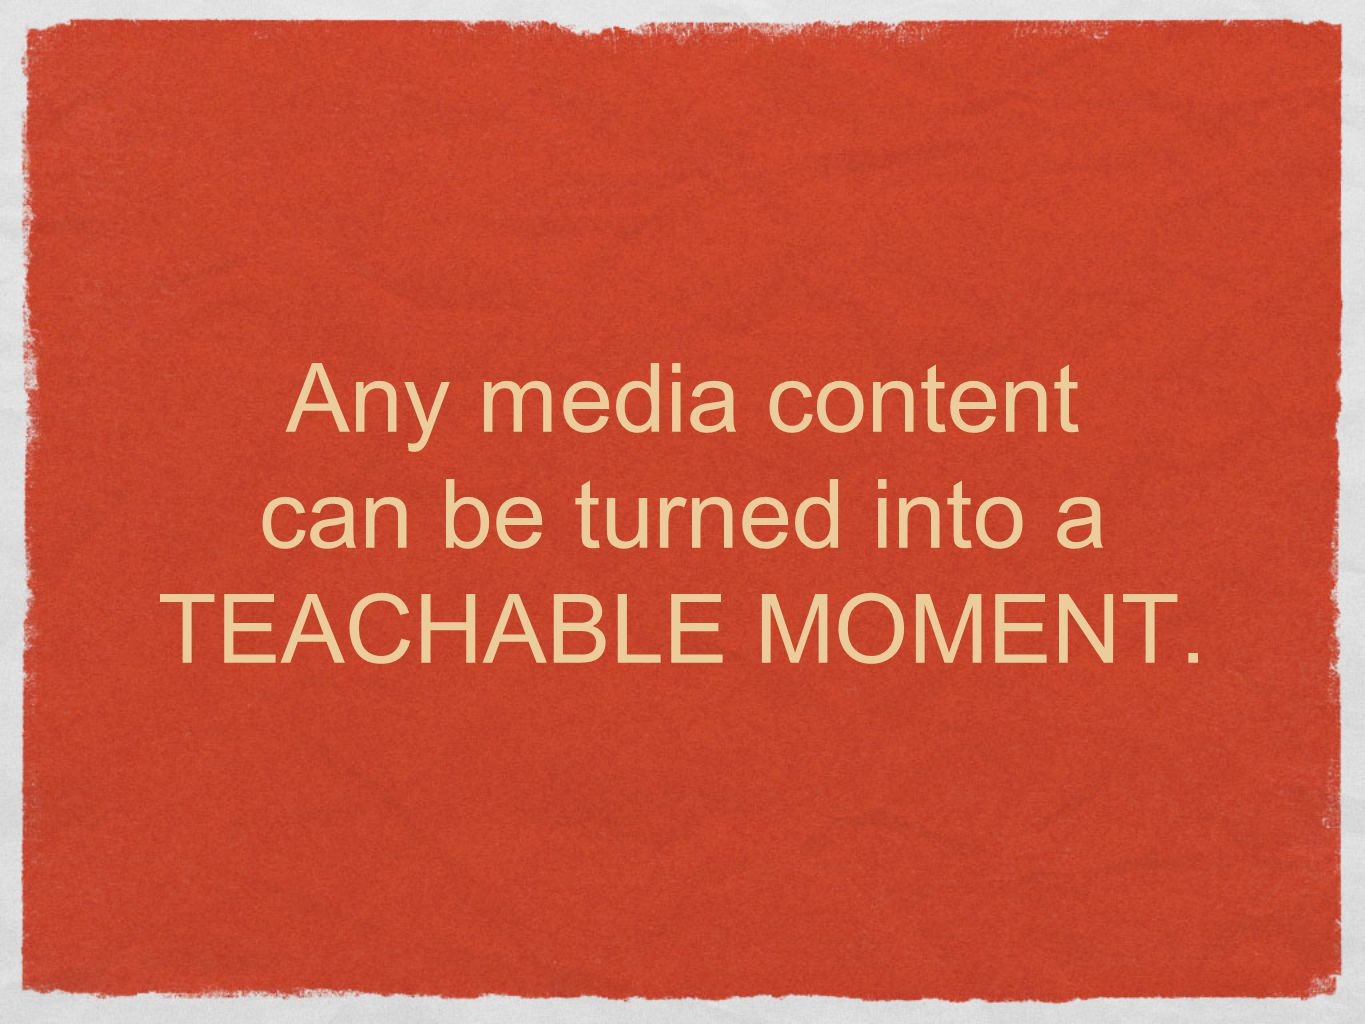 Any media content can be turned into a TEACHABLE MOMENT.